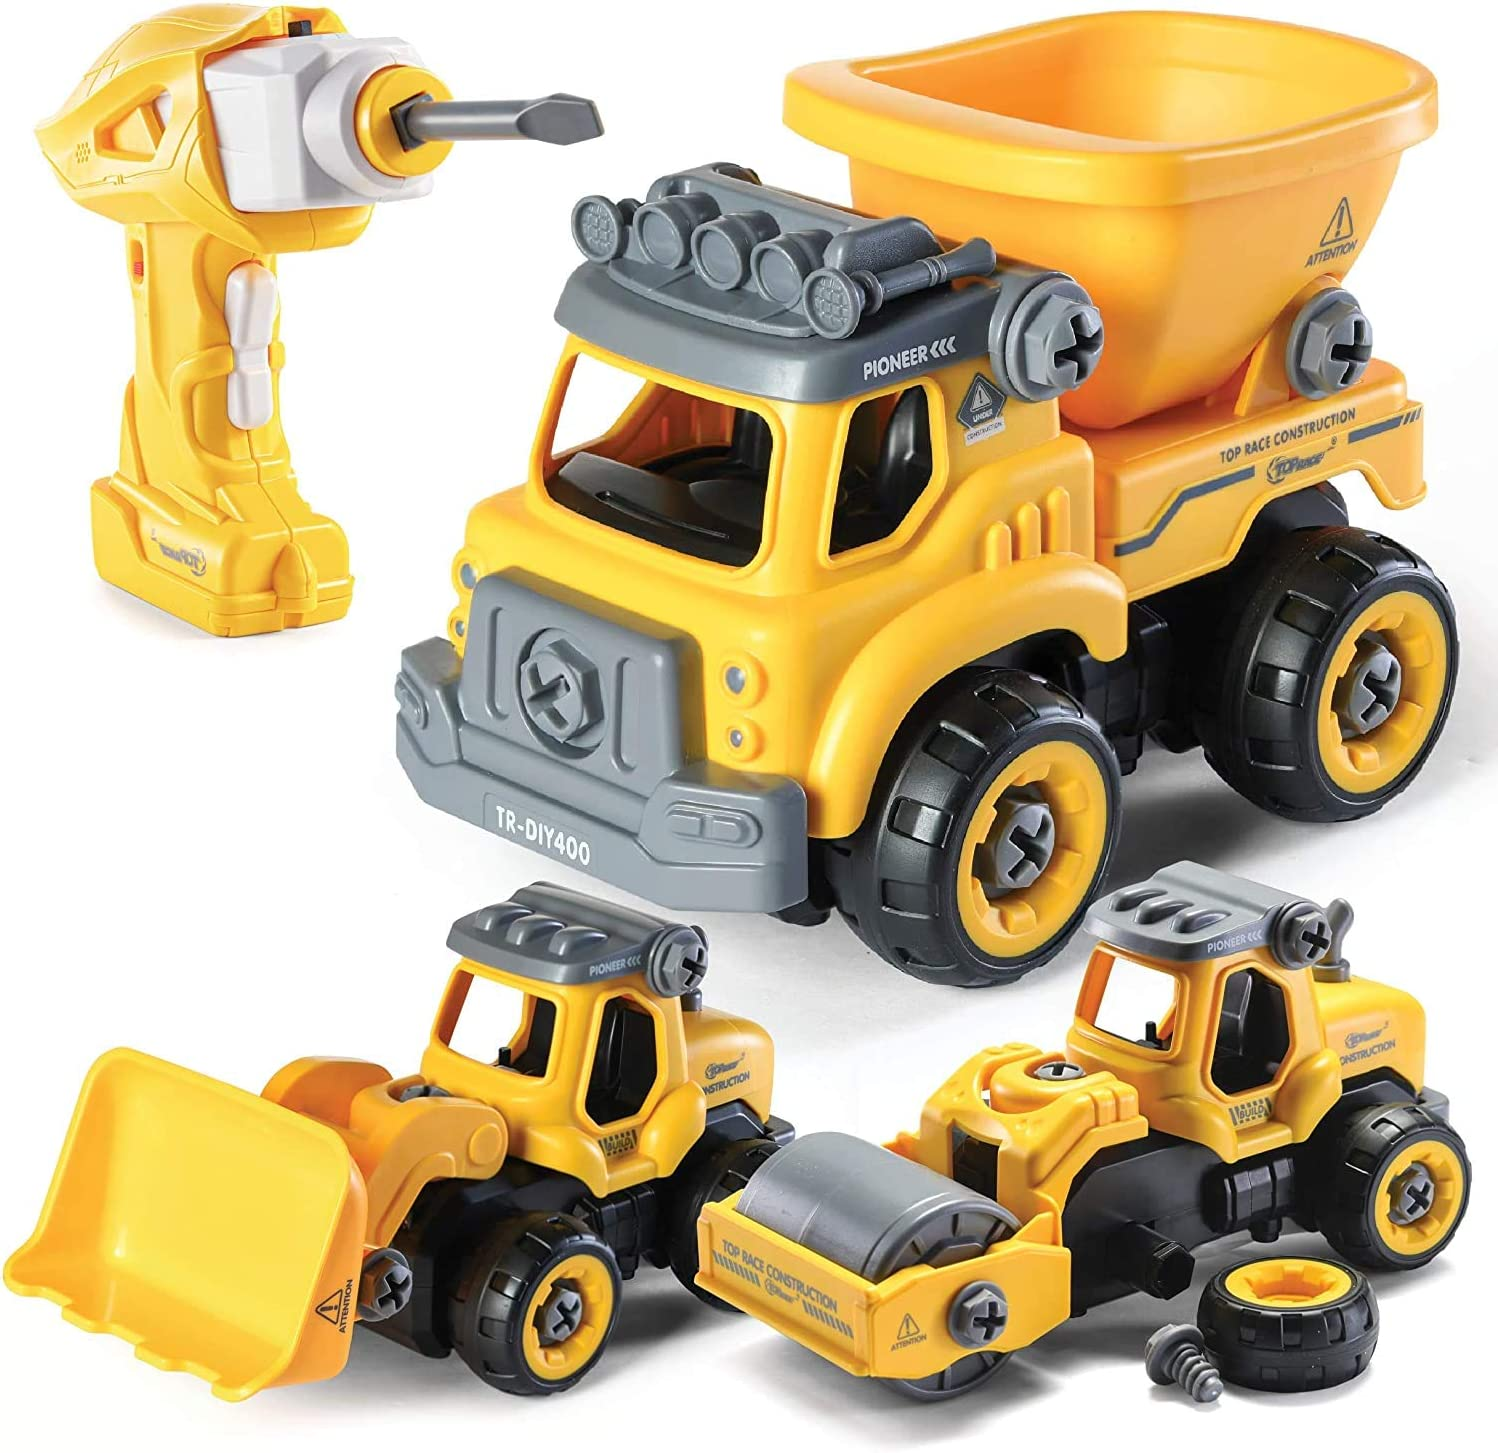 Top Race Take Apart Toys with Electric Drill | Converts to Remote Control Car | 3 in One Construction Truck Take Apart Toy for Boys | Gift Toys for Boys 3,4,5,6,7 Year Olds